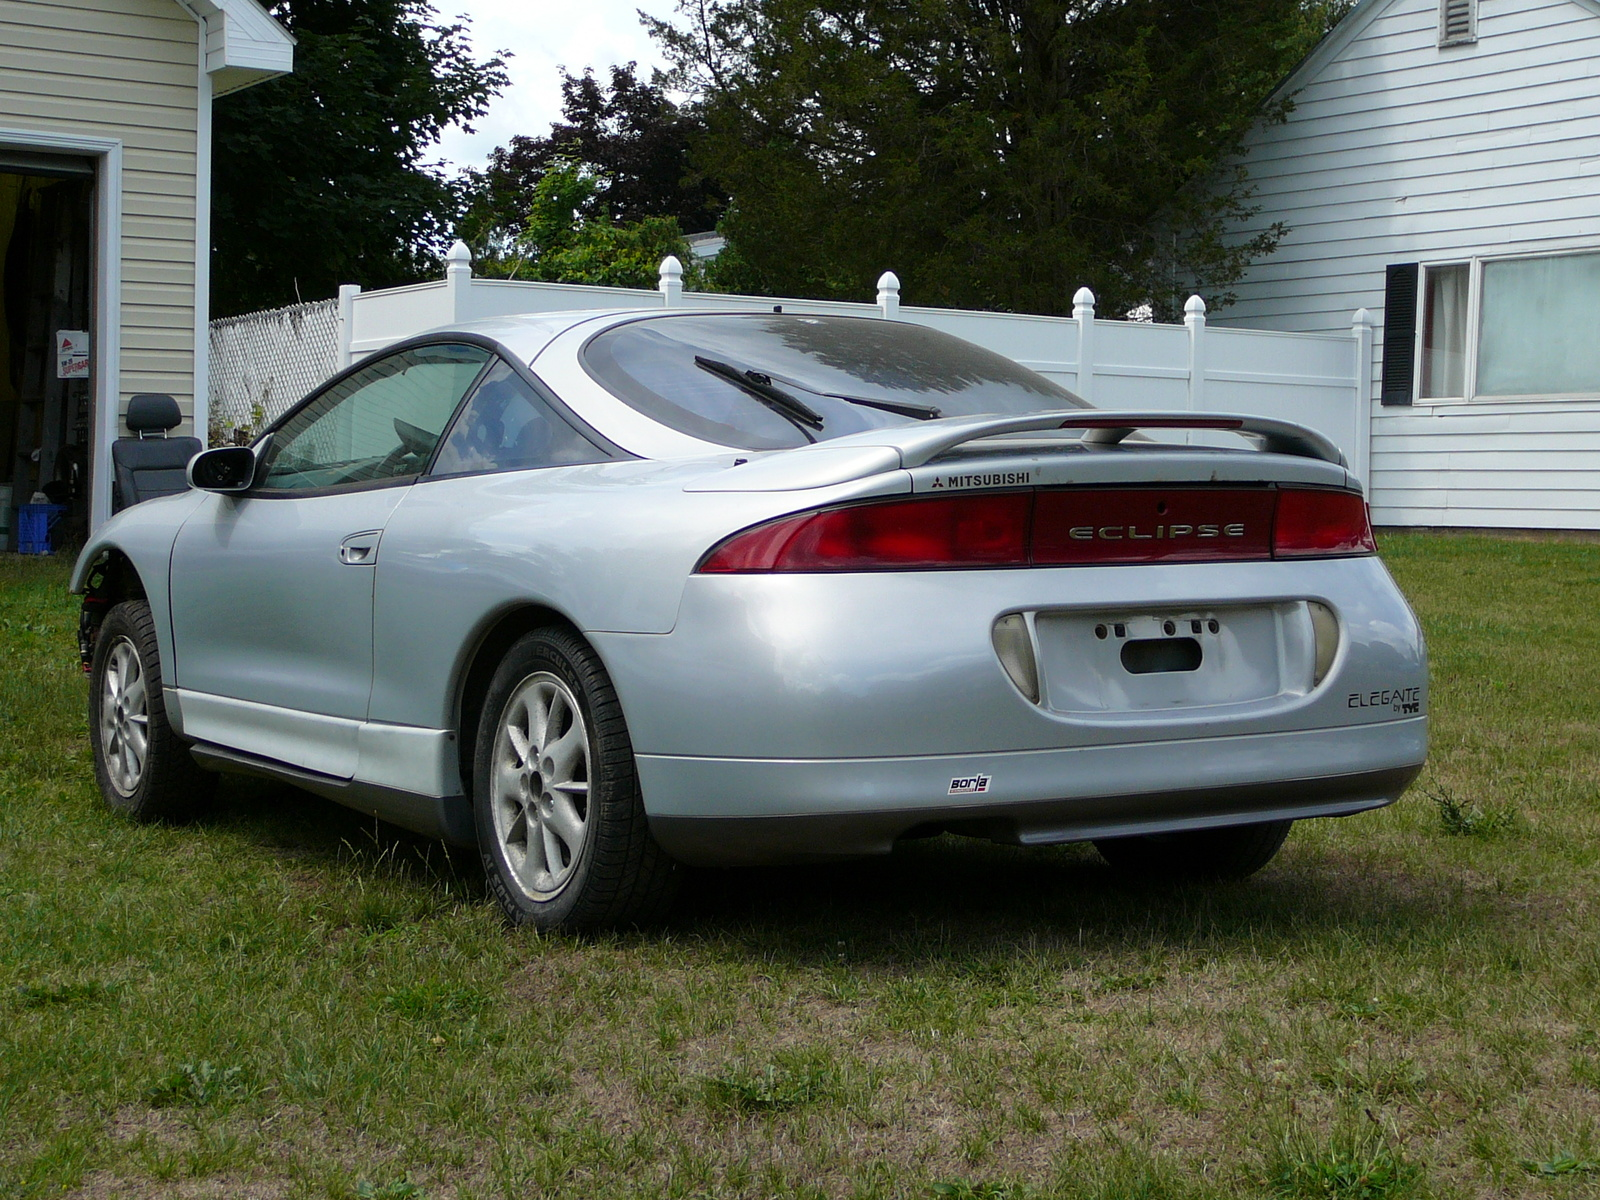 1995 mitsubishi eclipse other pictures cargurus. Black Bedroom Furniture Sets. Home Design Ideas